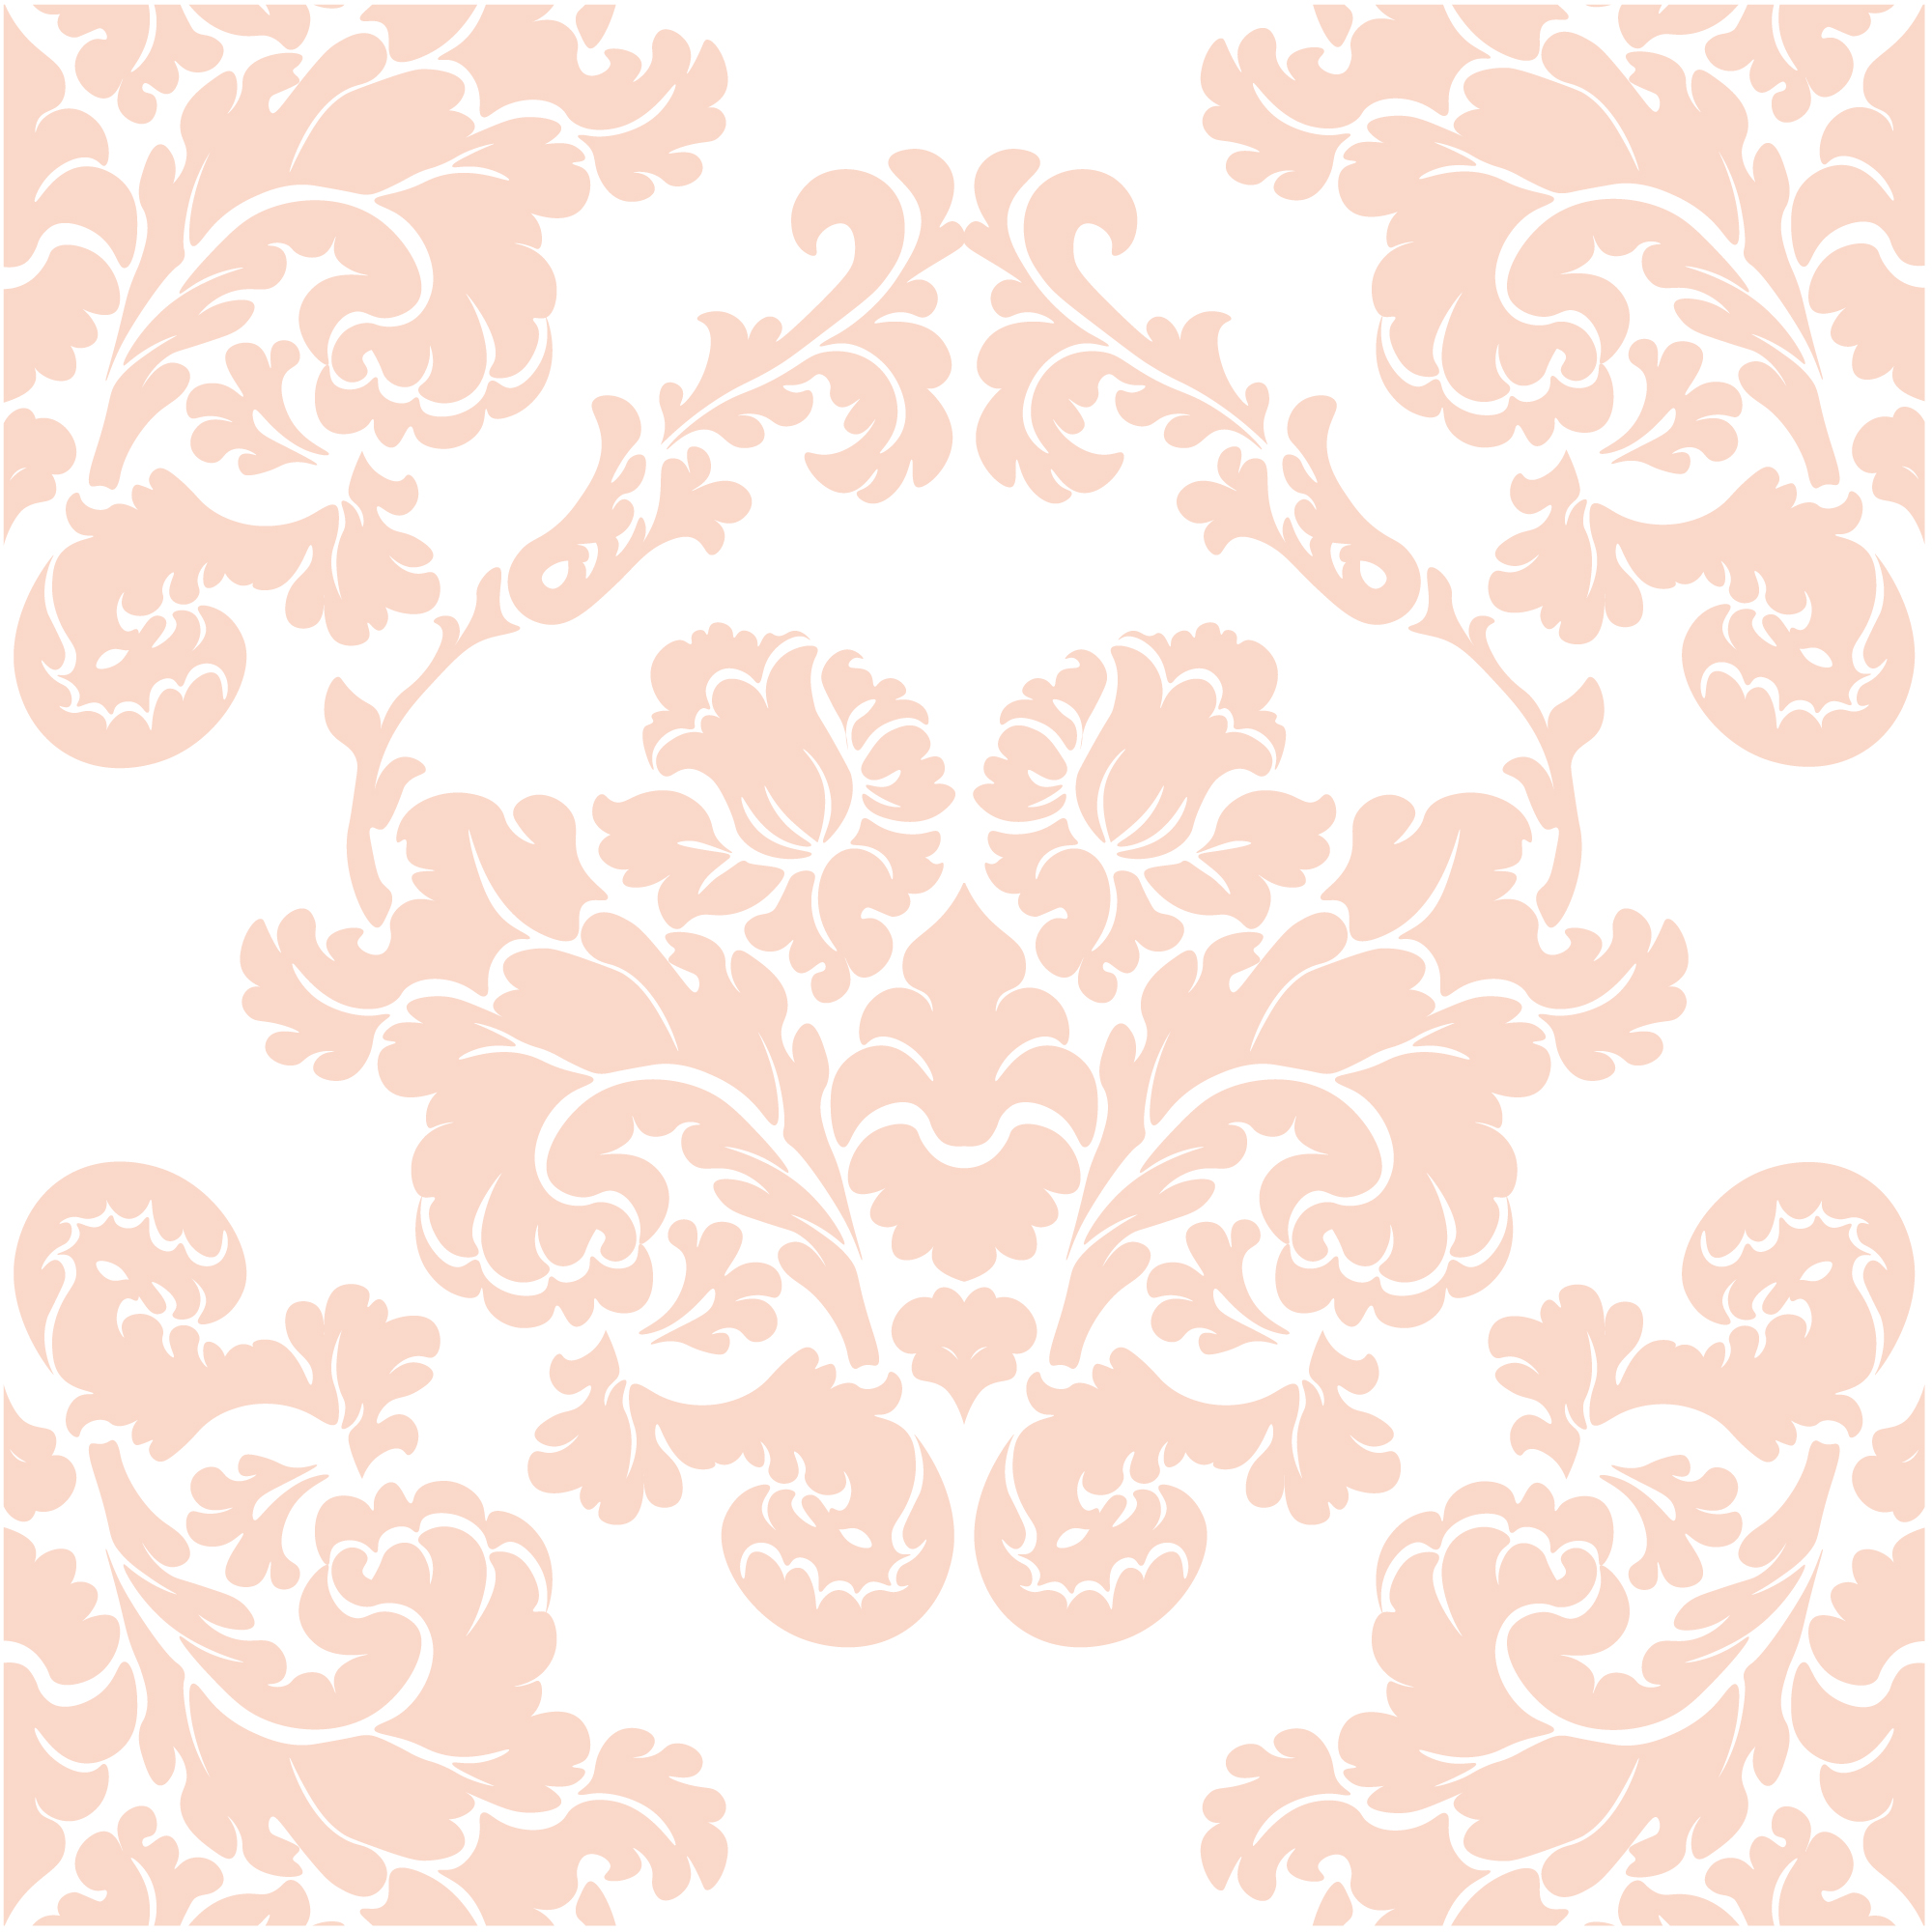 Orange and white ornamental pattern background